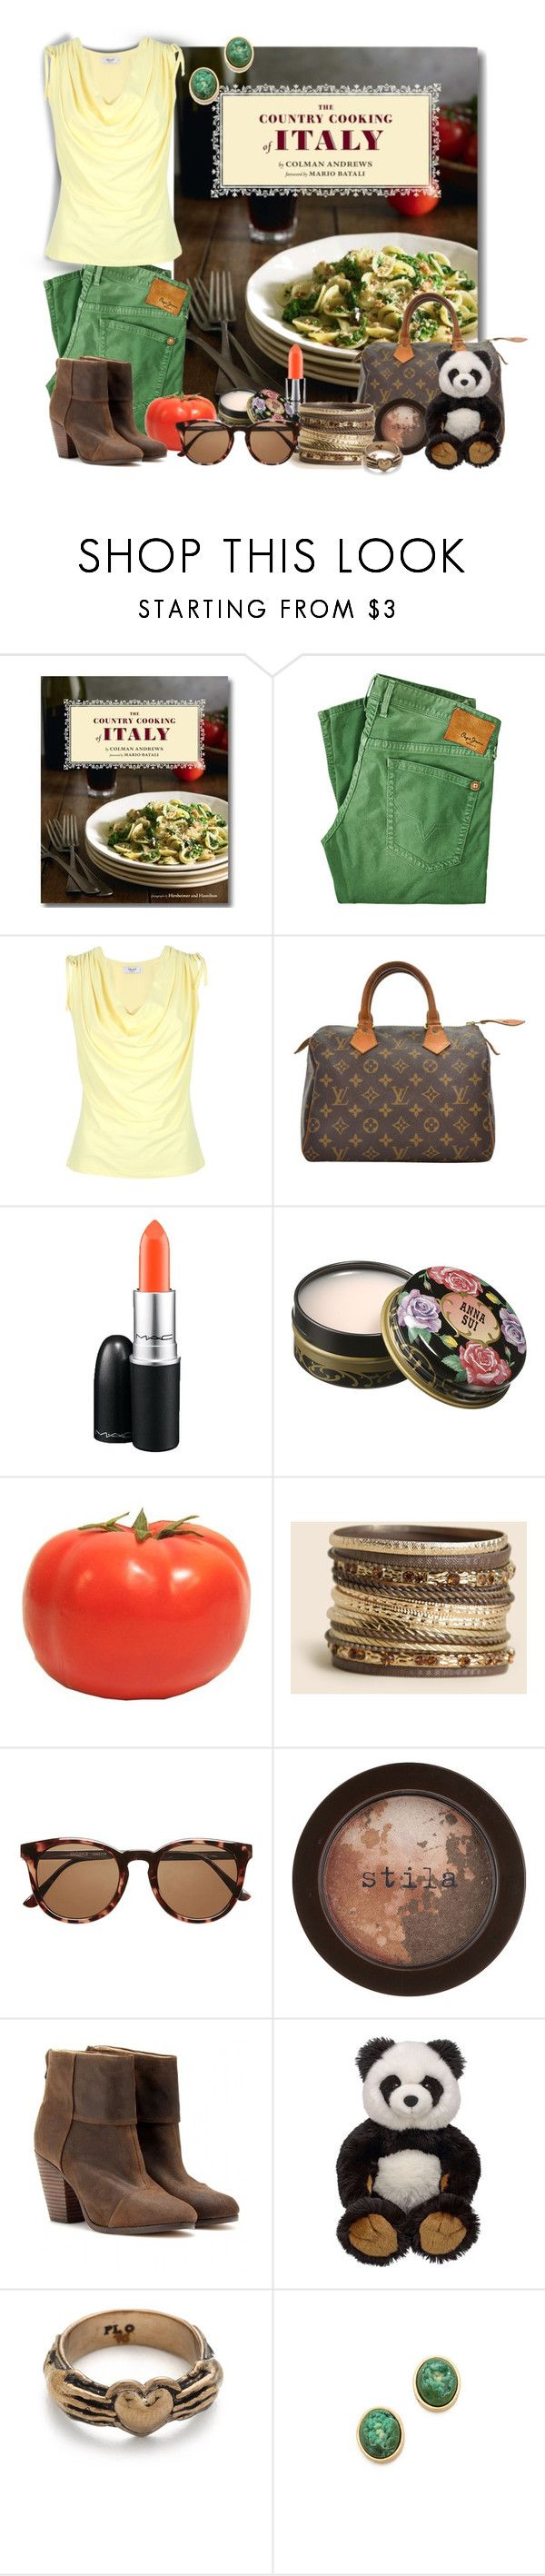 """Ethnic Food - Italy"" by mary-gereis ❤ liked on Polyvore featuring The Bread Project, Pepe Jeans London, Blugirl, Louis Vuitton, MAC Cosmetics, Anna Sui, Witchery, Stila, rag & bone and Pamela Love"